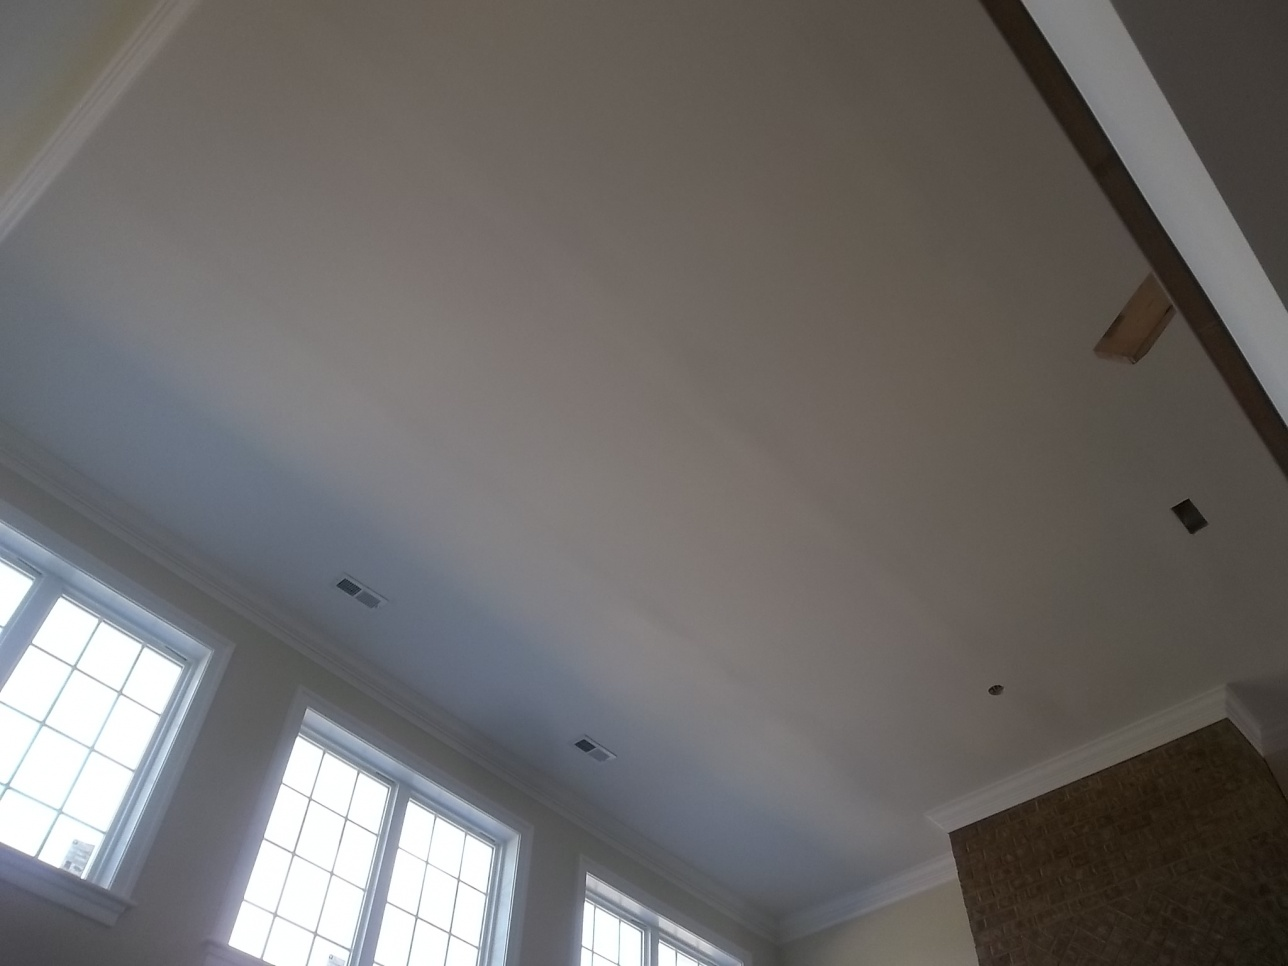 Trouble Hiding Ceiling Tape Joints 100 0517 Jpg